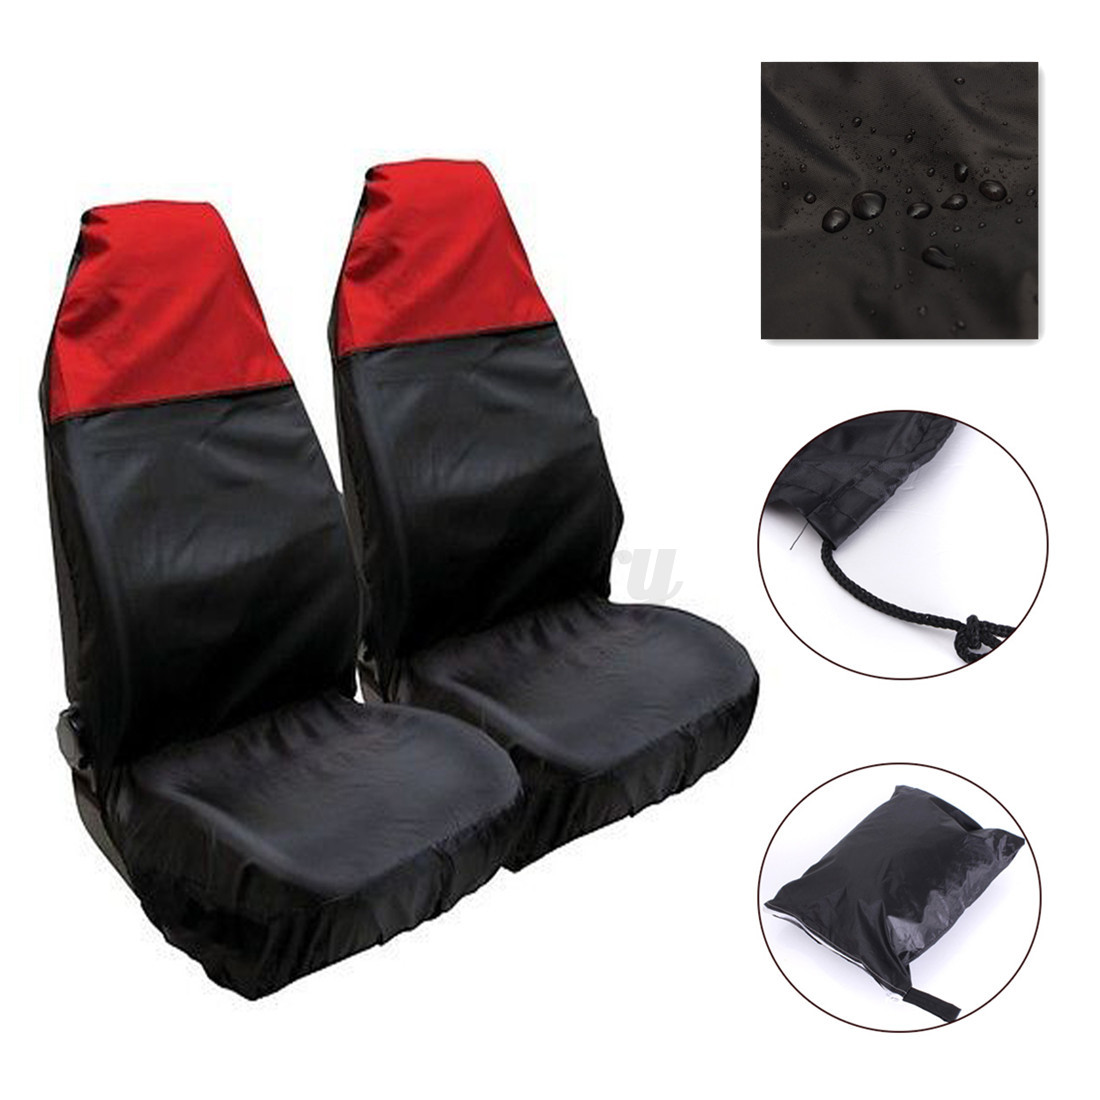 2x Universal Front Car Seat Protector Cover Waterproof